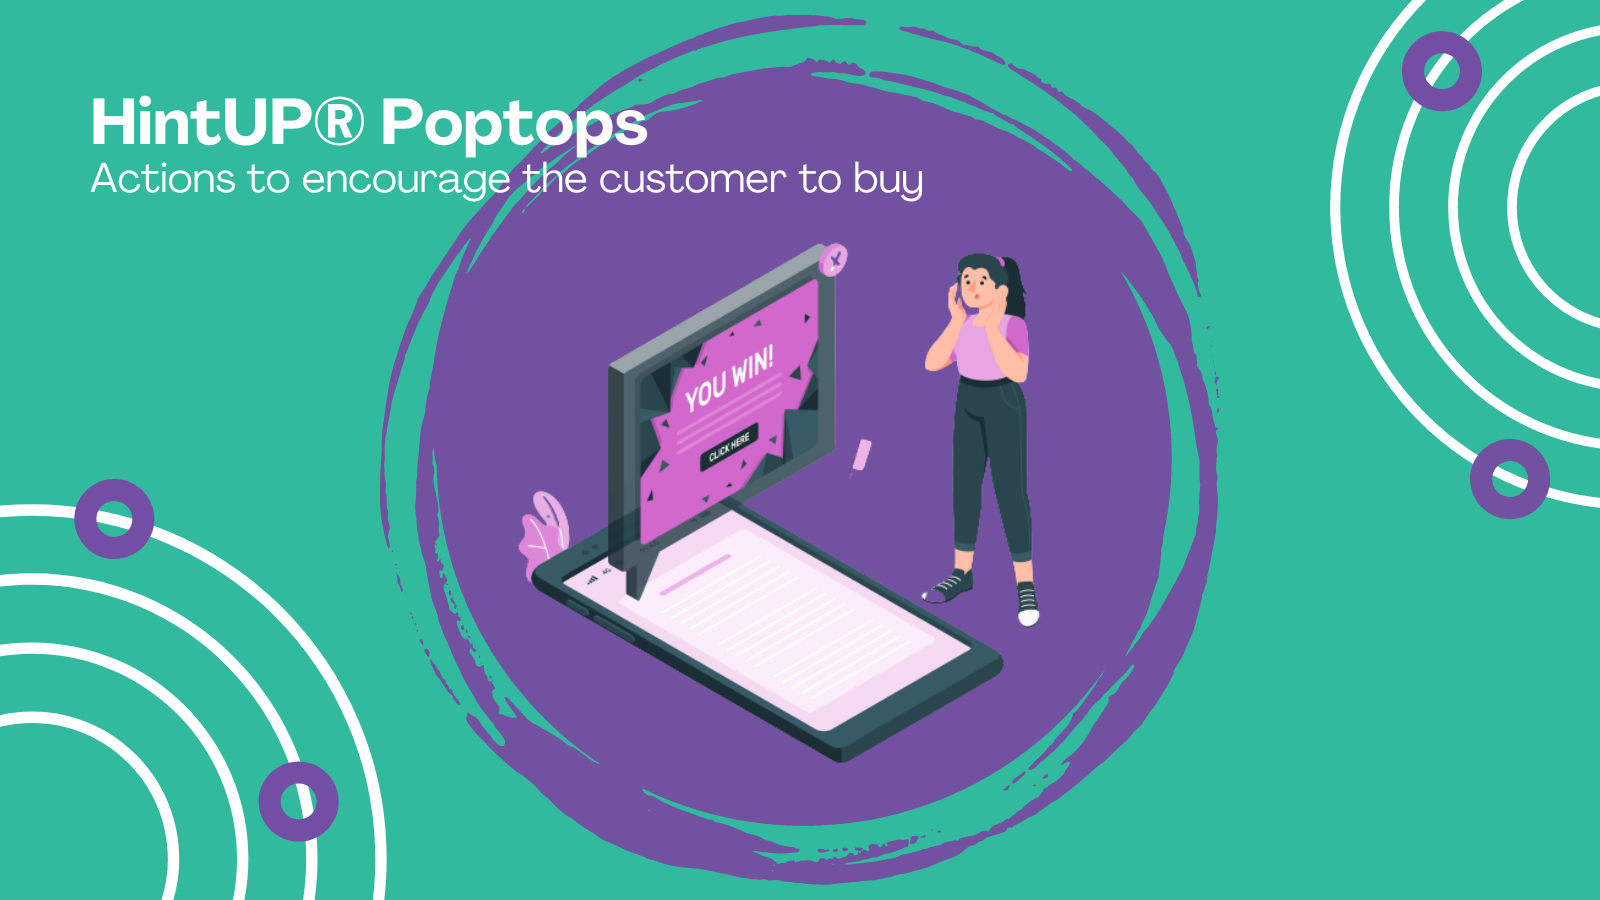 HintUP® Poptops - actions to encourage the customer to buy